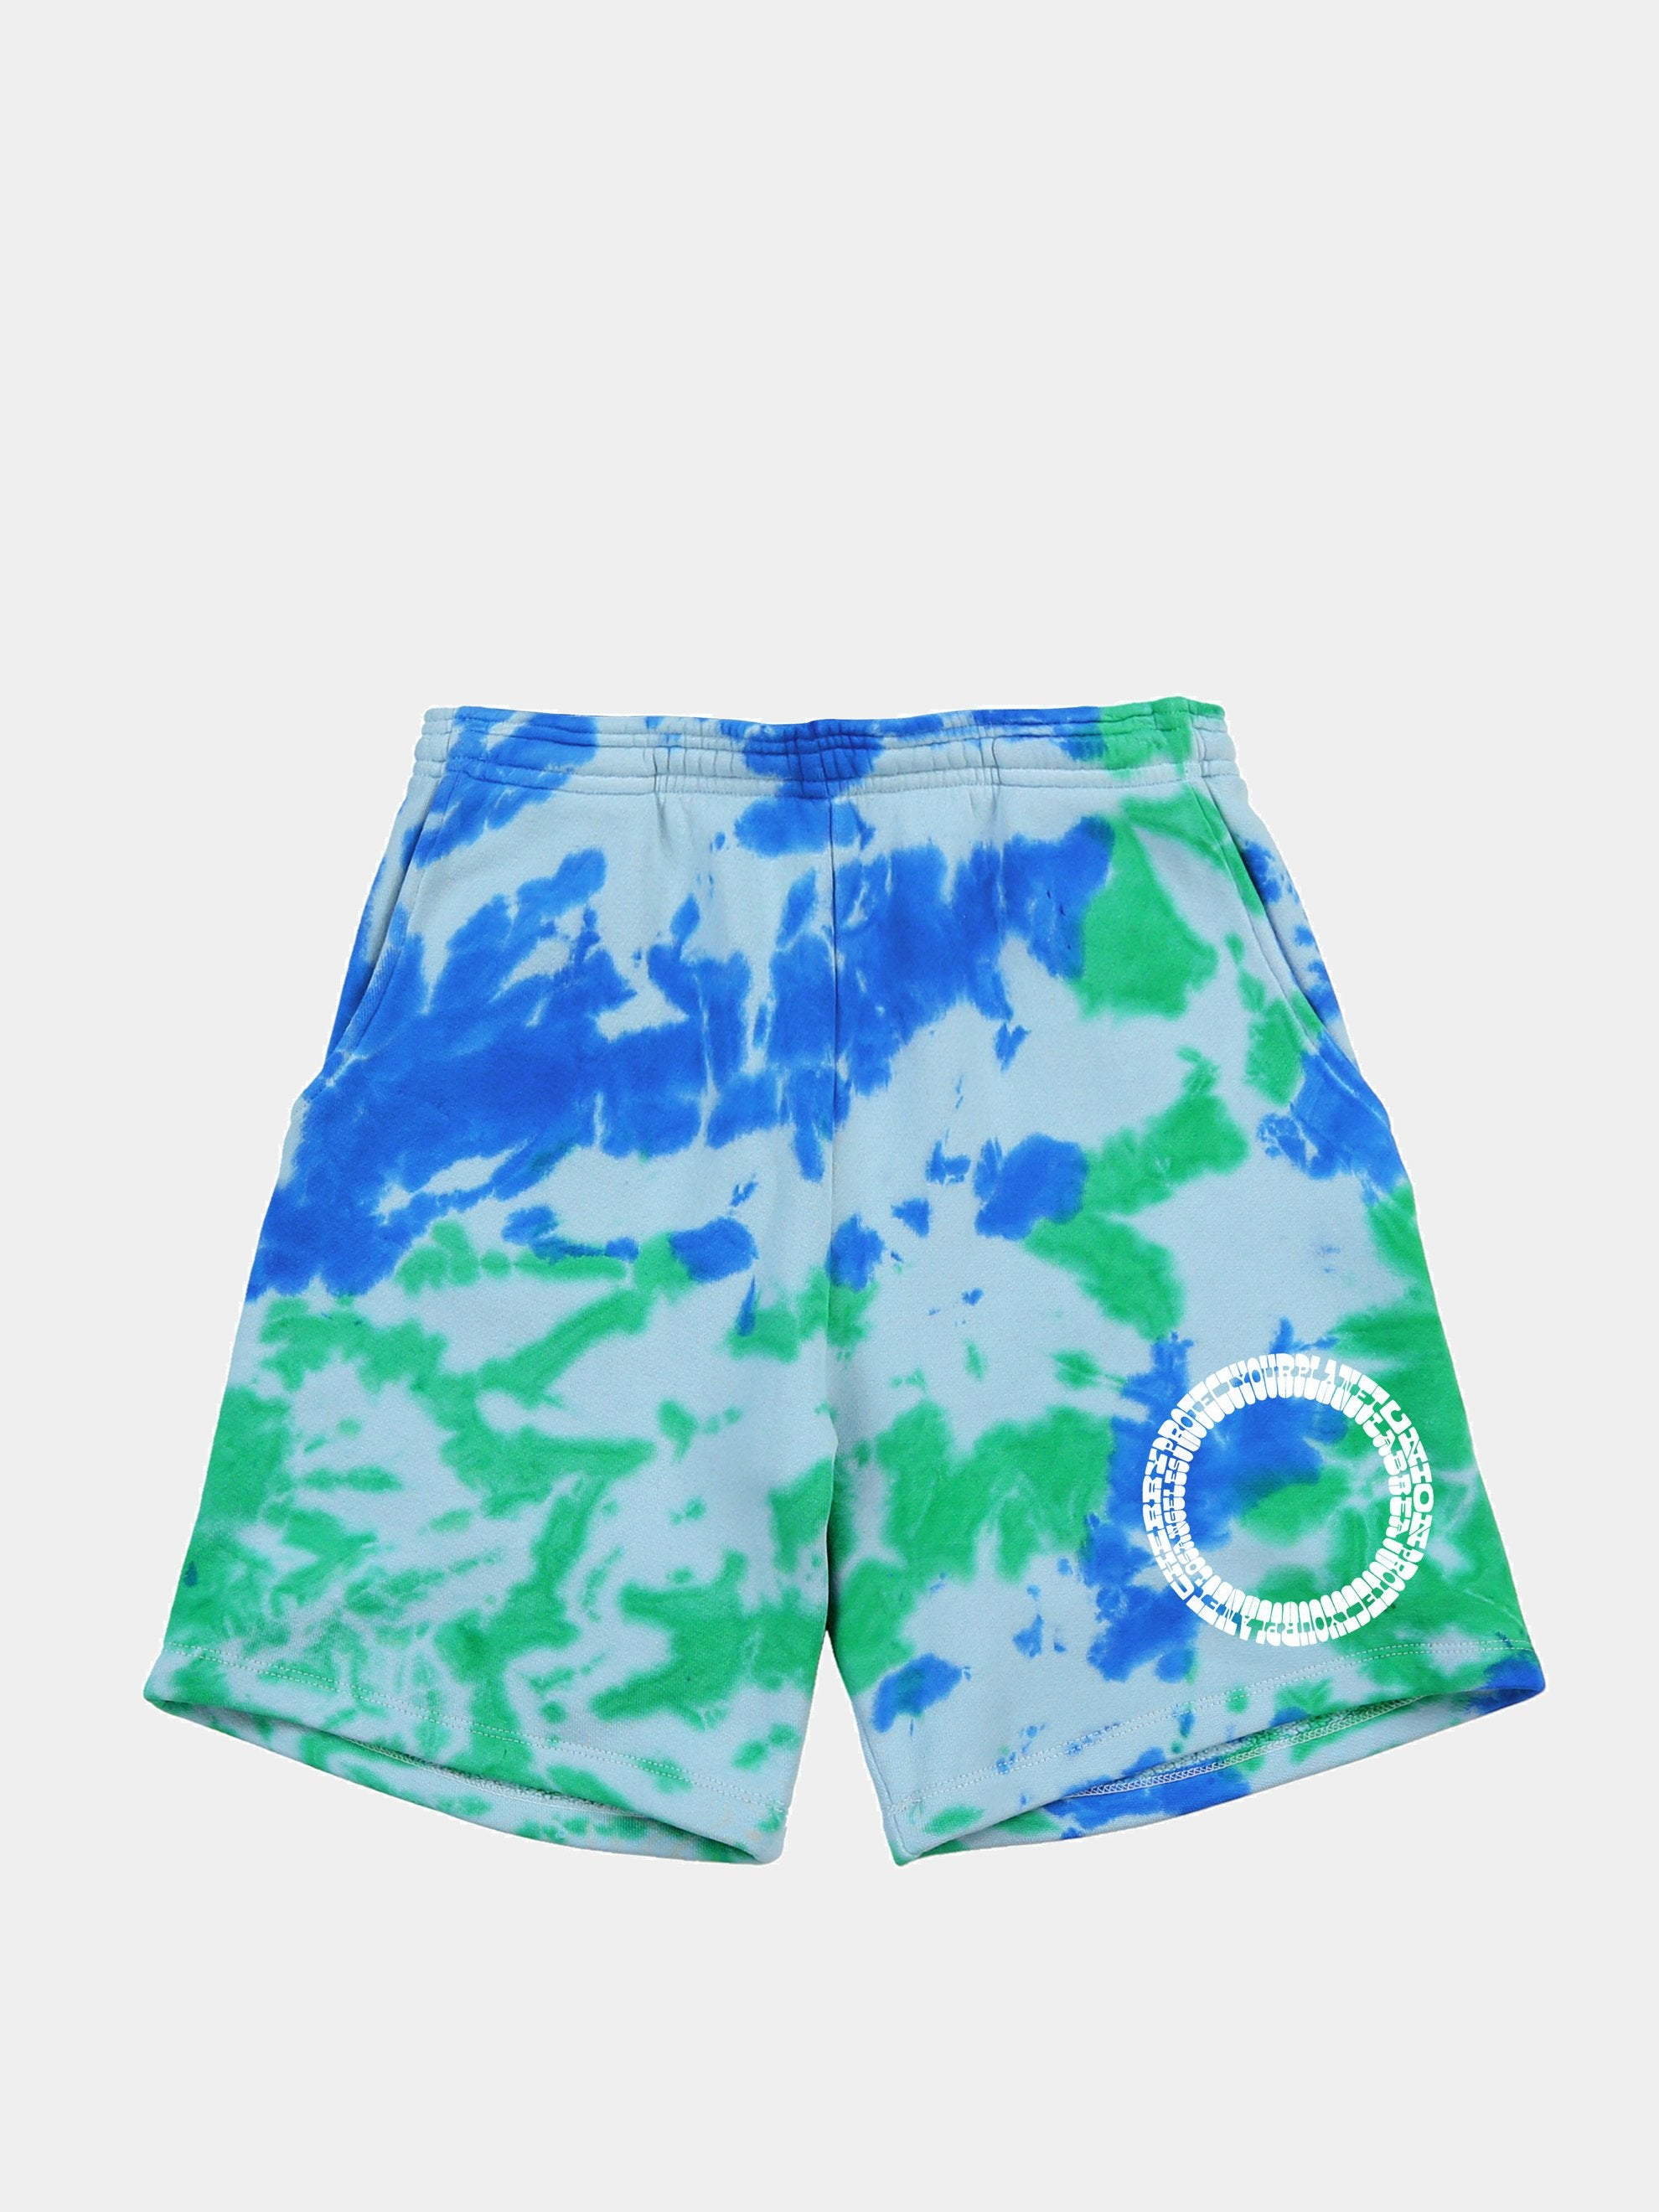 Blue Tye-Dye Shorts 1